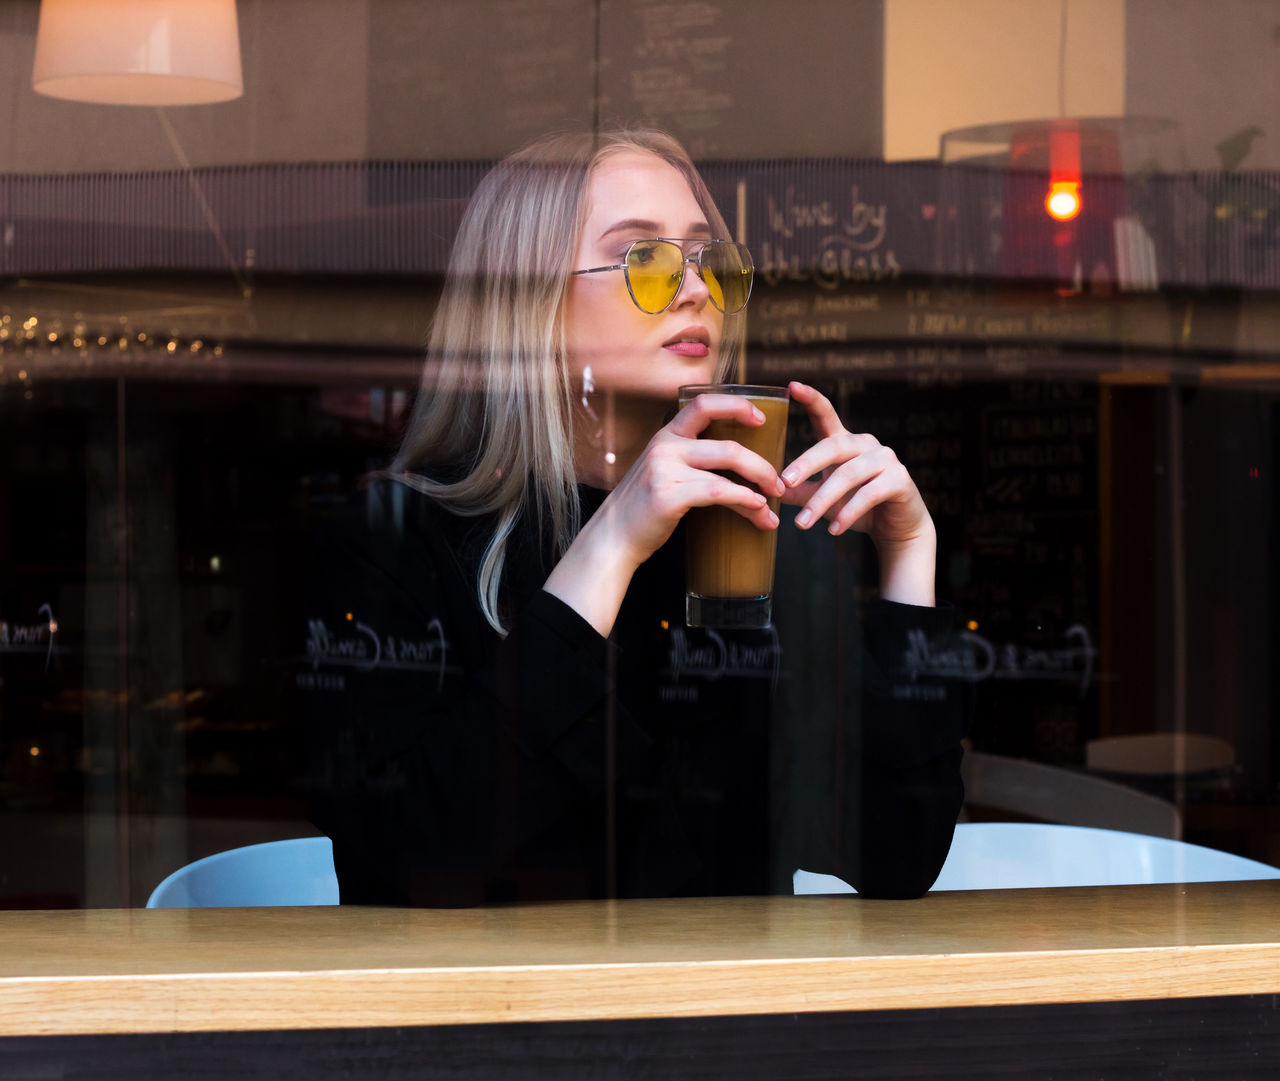 YOUNG WOMAN USING MOBILE PHONE AT WINDOW